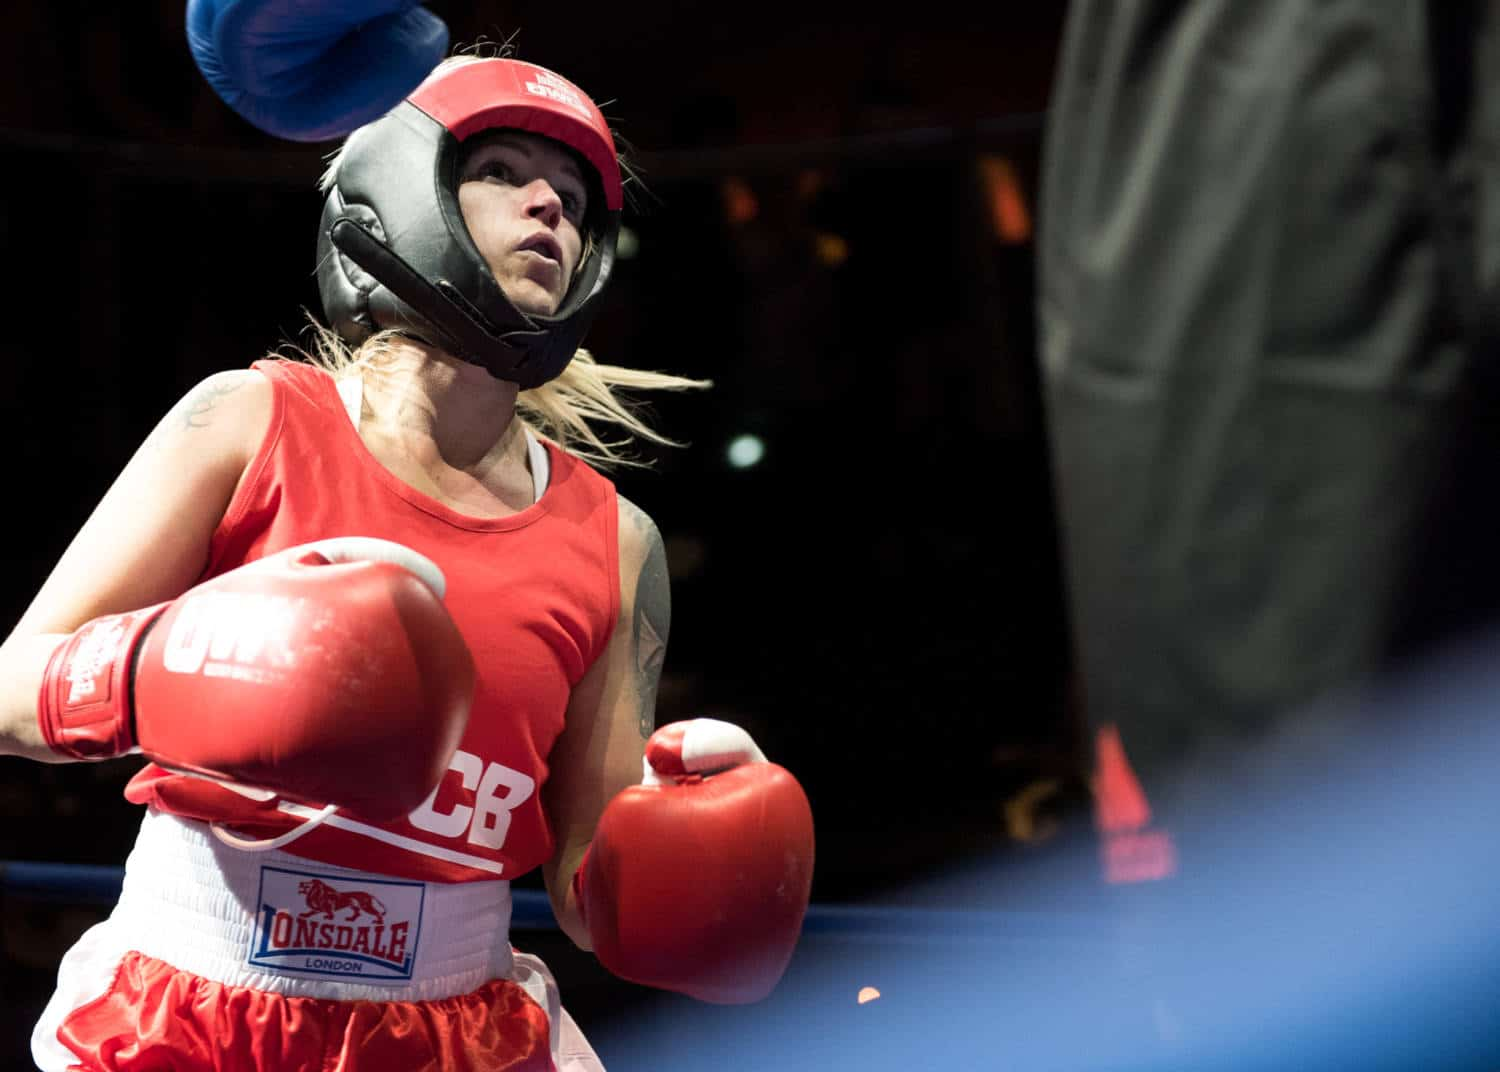 Is white collar boxing regulated